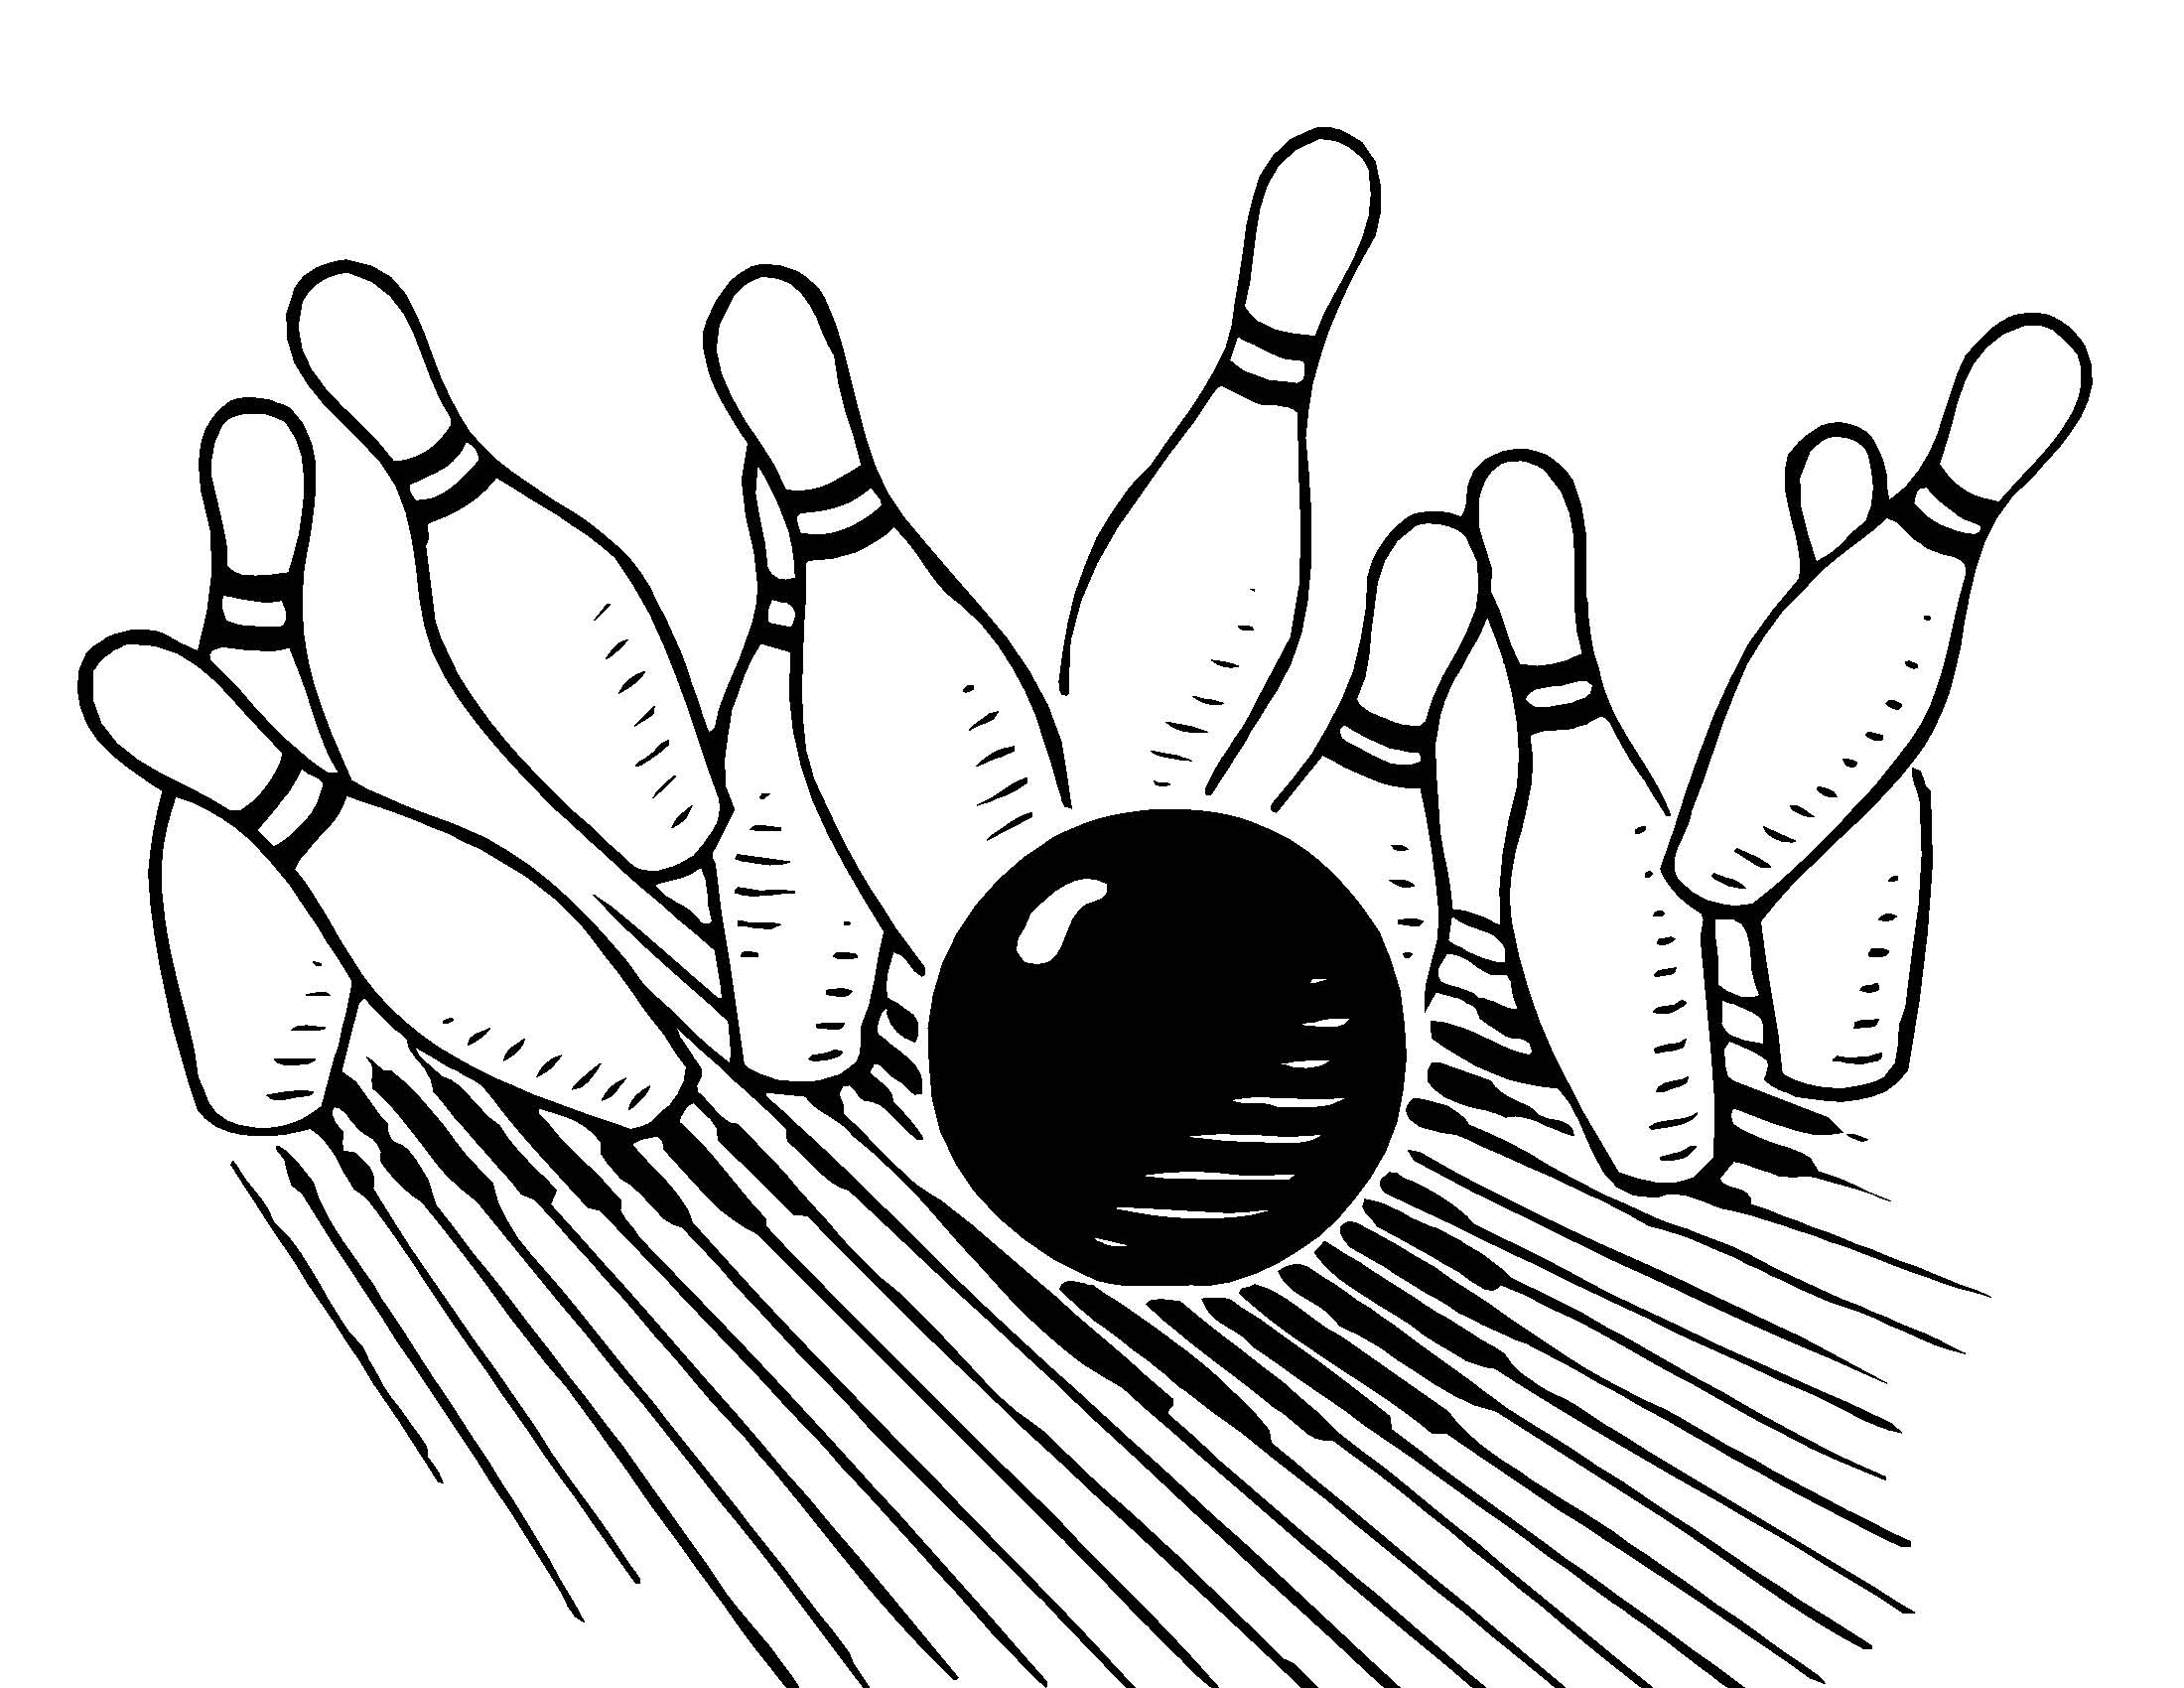 Free Pictures Of Bowling Pins And Balls, Download Free